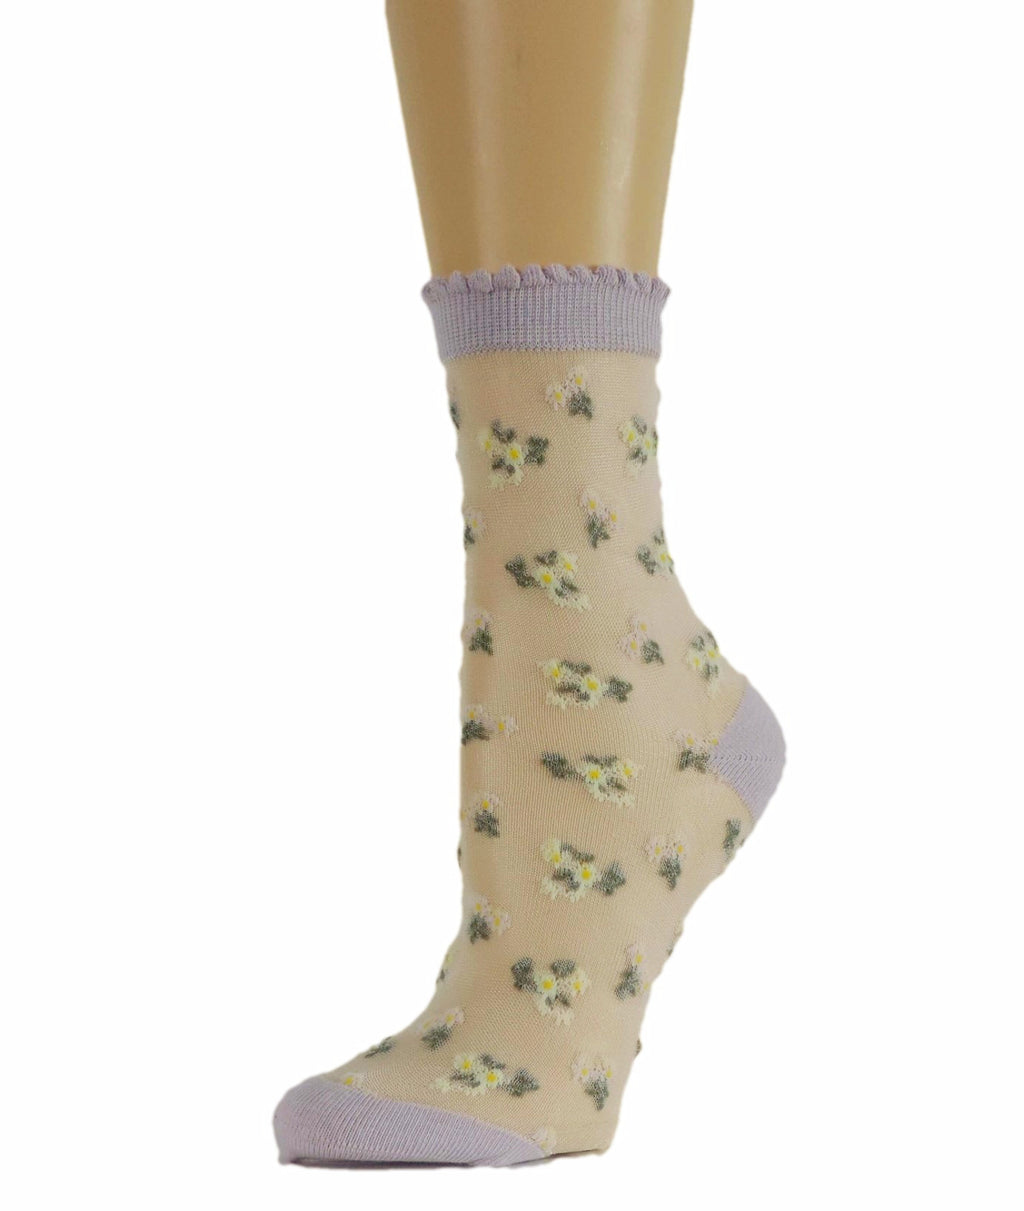 Tiny Floral Sheer Socks - Global Trendz Fashion®